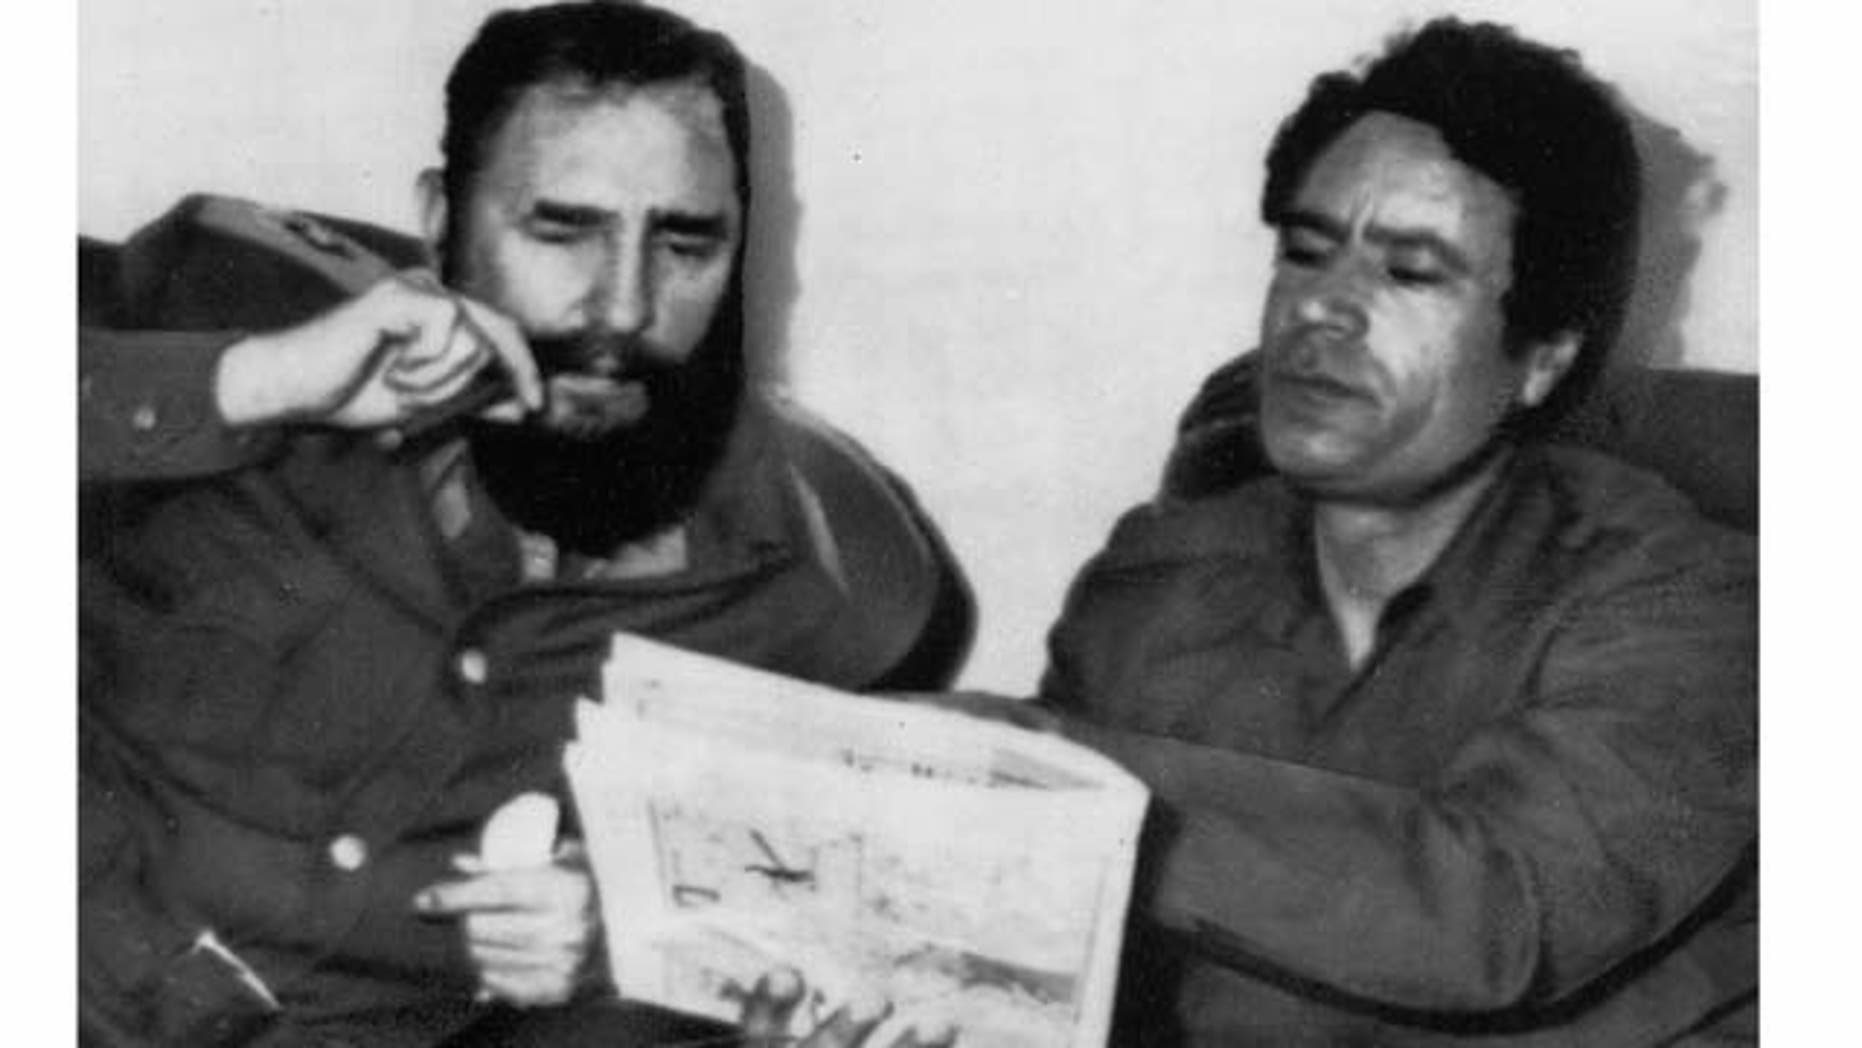 FILE - In this March 8, 1977 file photo Cuban leader Fidel Castro and Moammar Gadhafi meet in Tripoli, Libya. As rebels swarmed into Tripoli late Sunday, Aug. 21, 2011, and Gadhafi's son and one-time heir apparent Seif al-Islam was arrested, Gadhafi's rule was all but over, even though some loyalists continued to resist. (AP Photo, File)